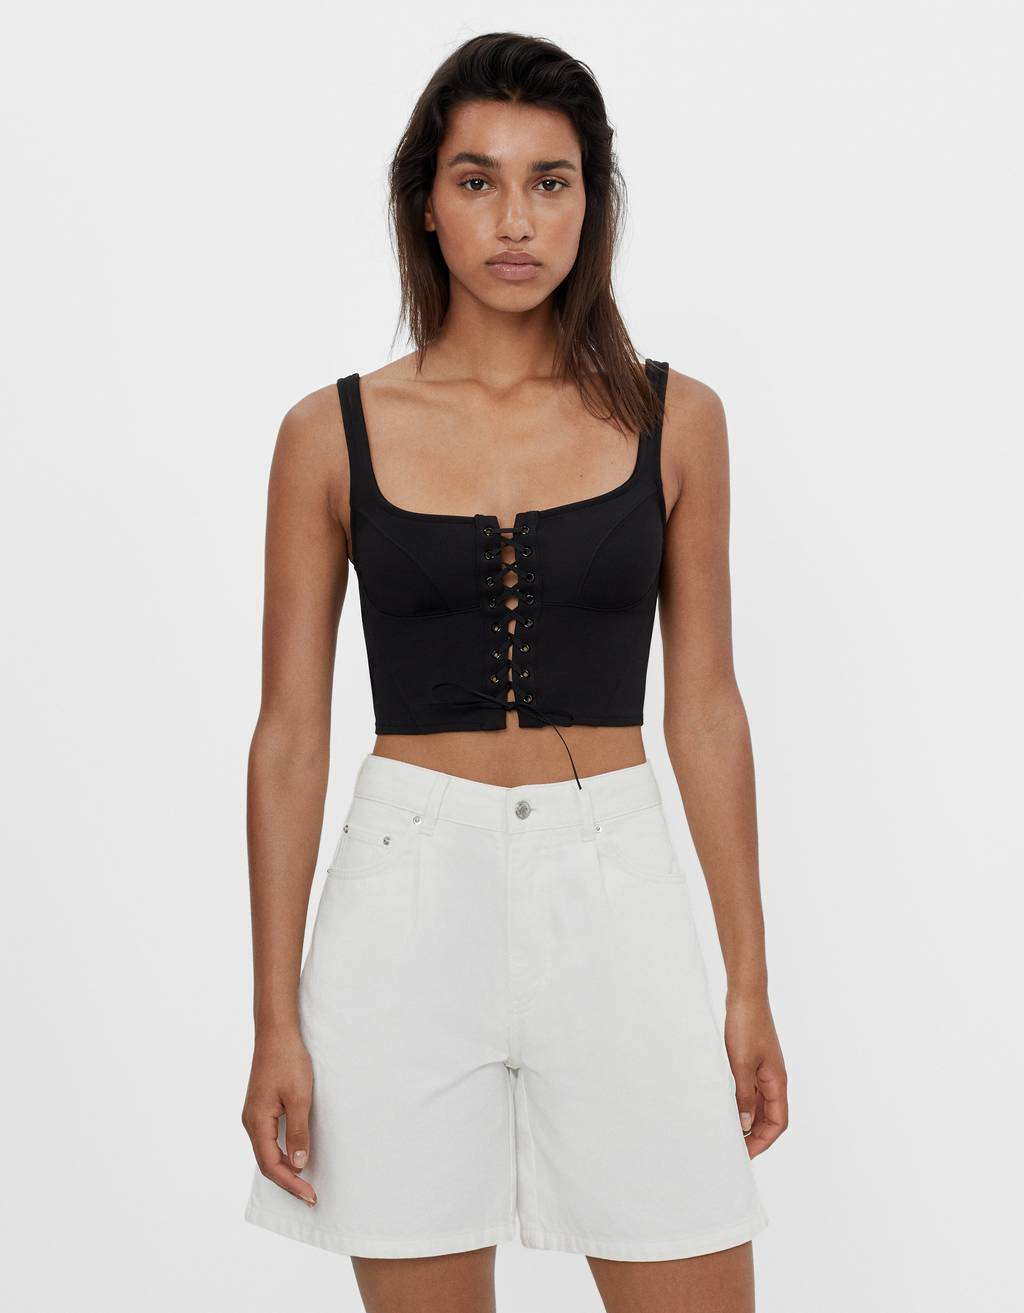 Top style corset lacets